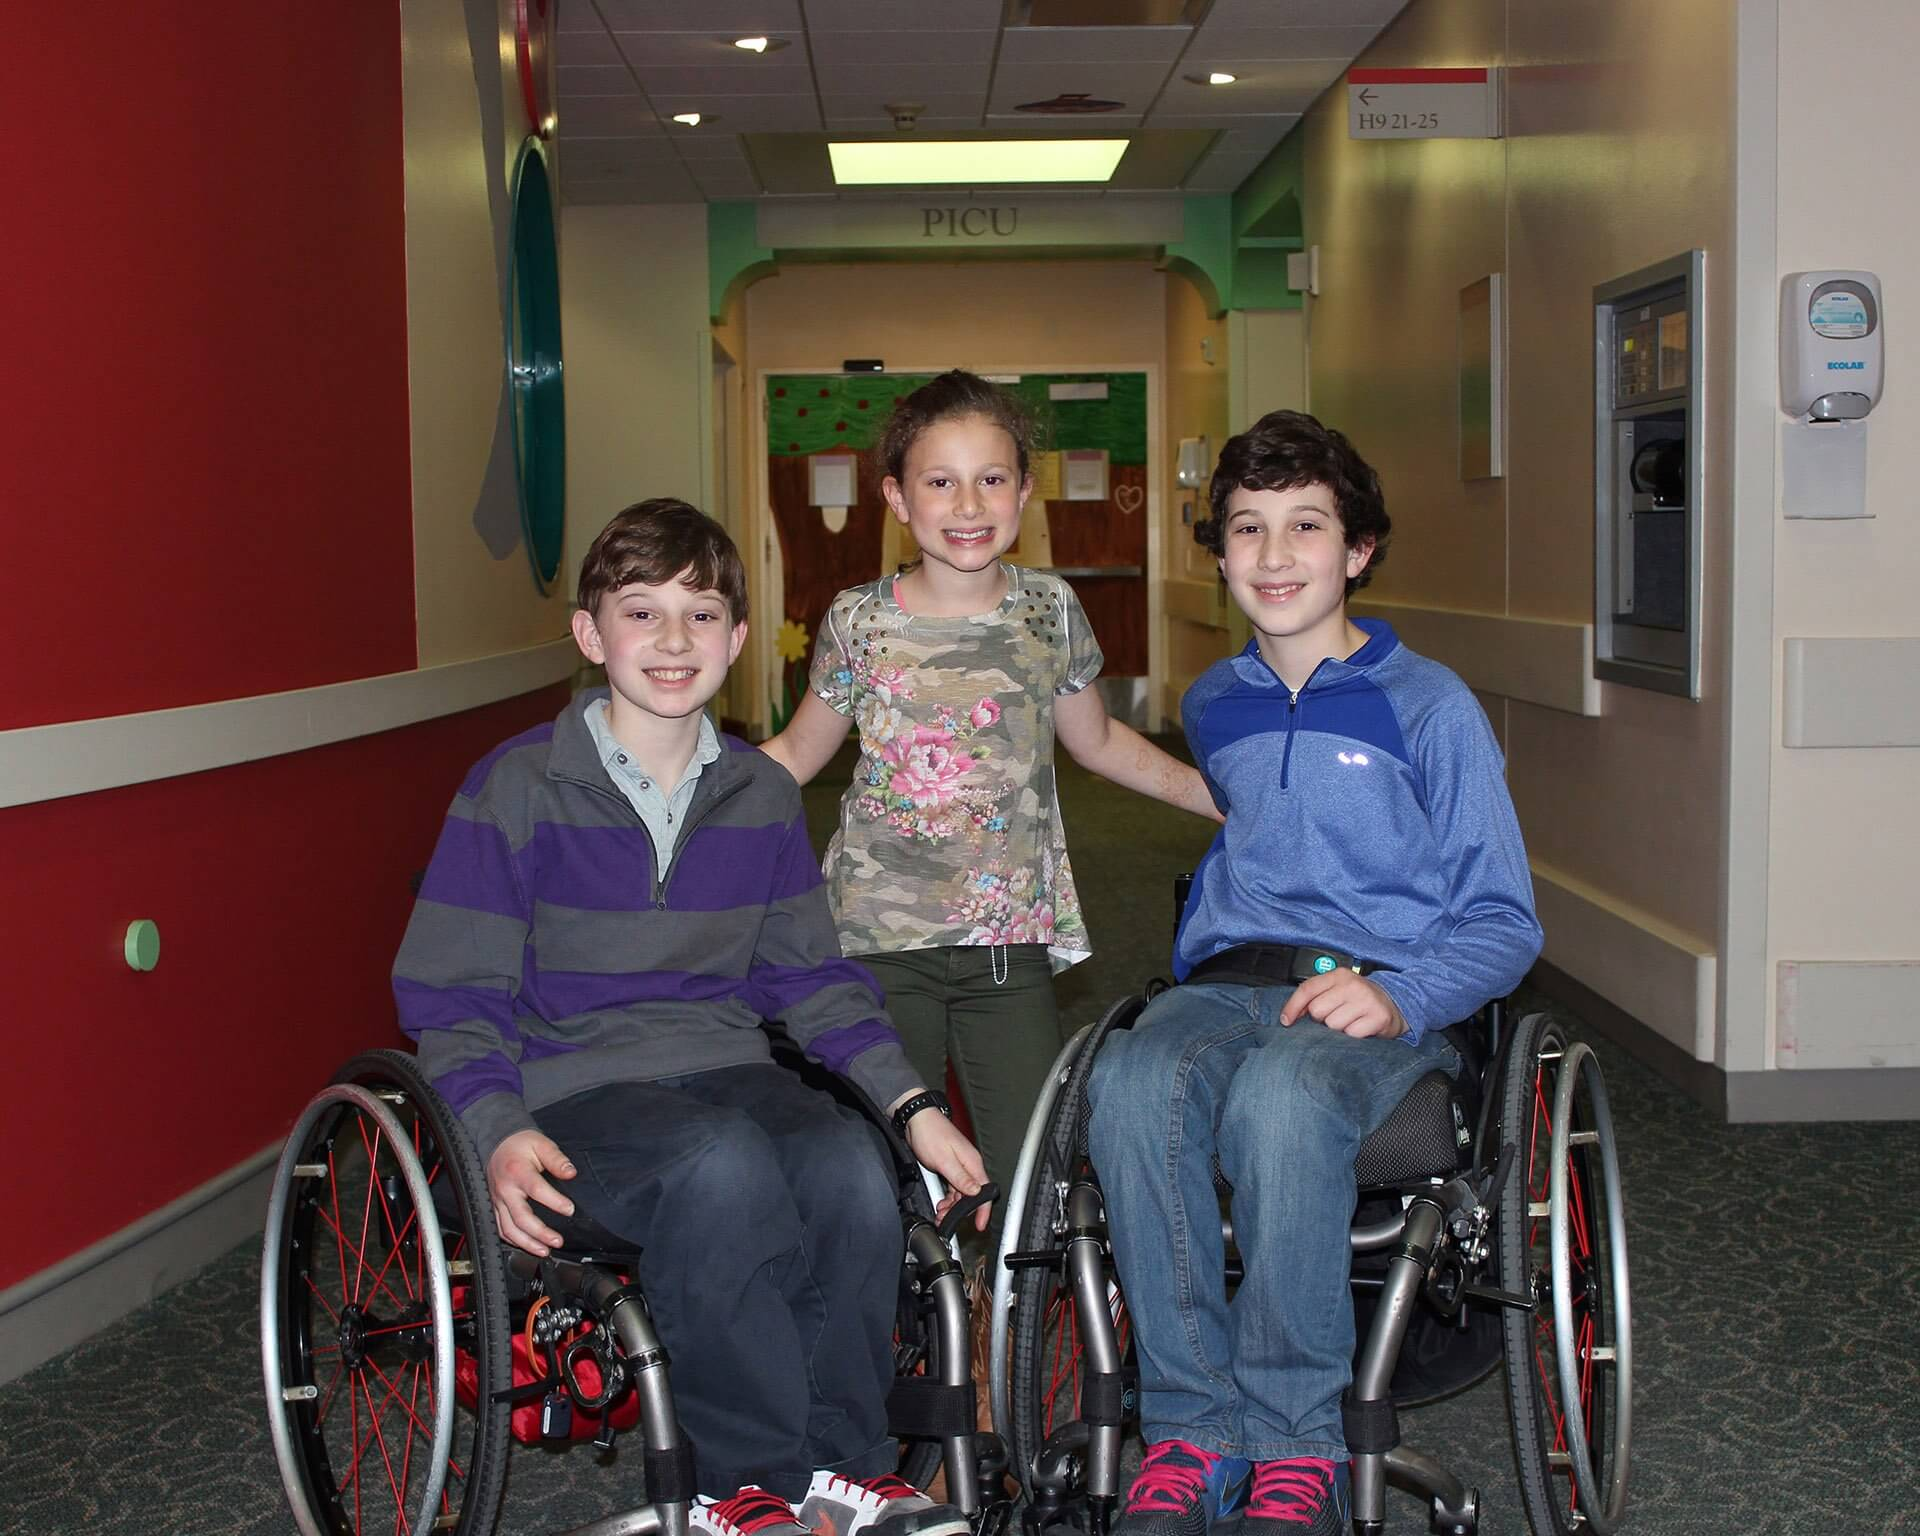 From left to right: Aaron, Willa and Peter Berry are all smiles at a recent visit to Children's Memorial Hermann Hospital